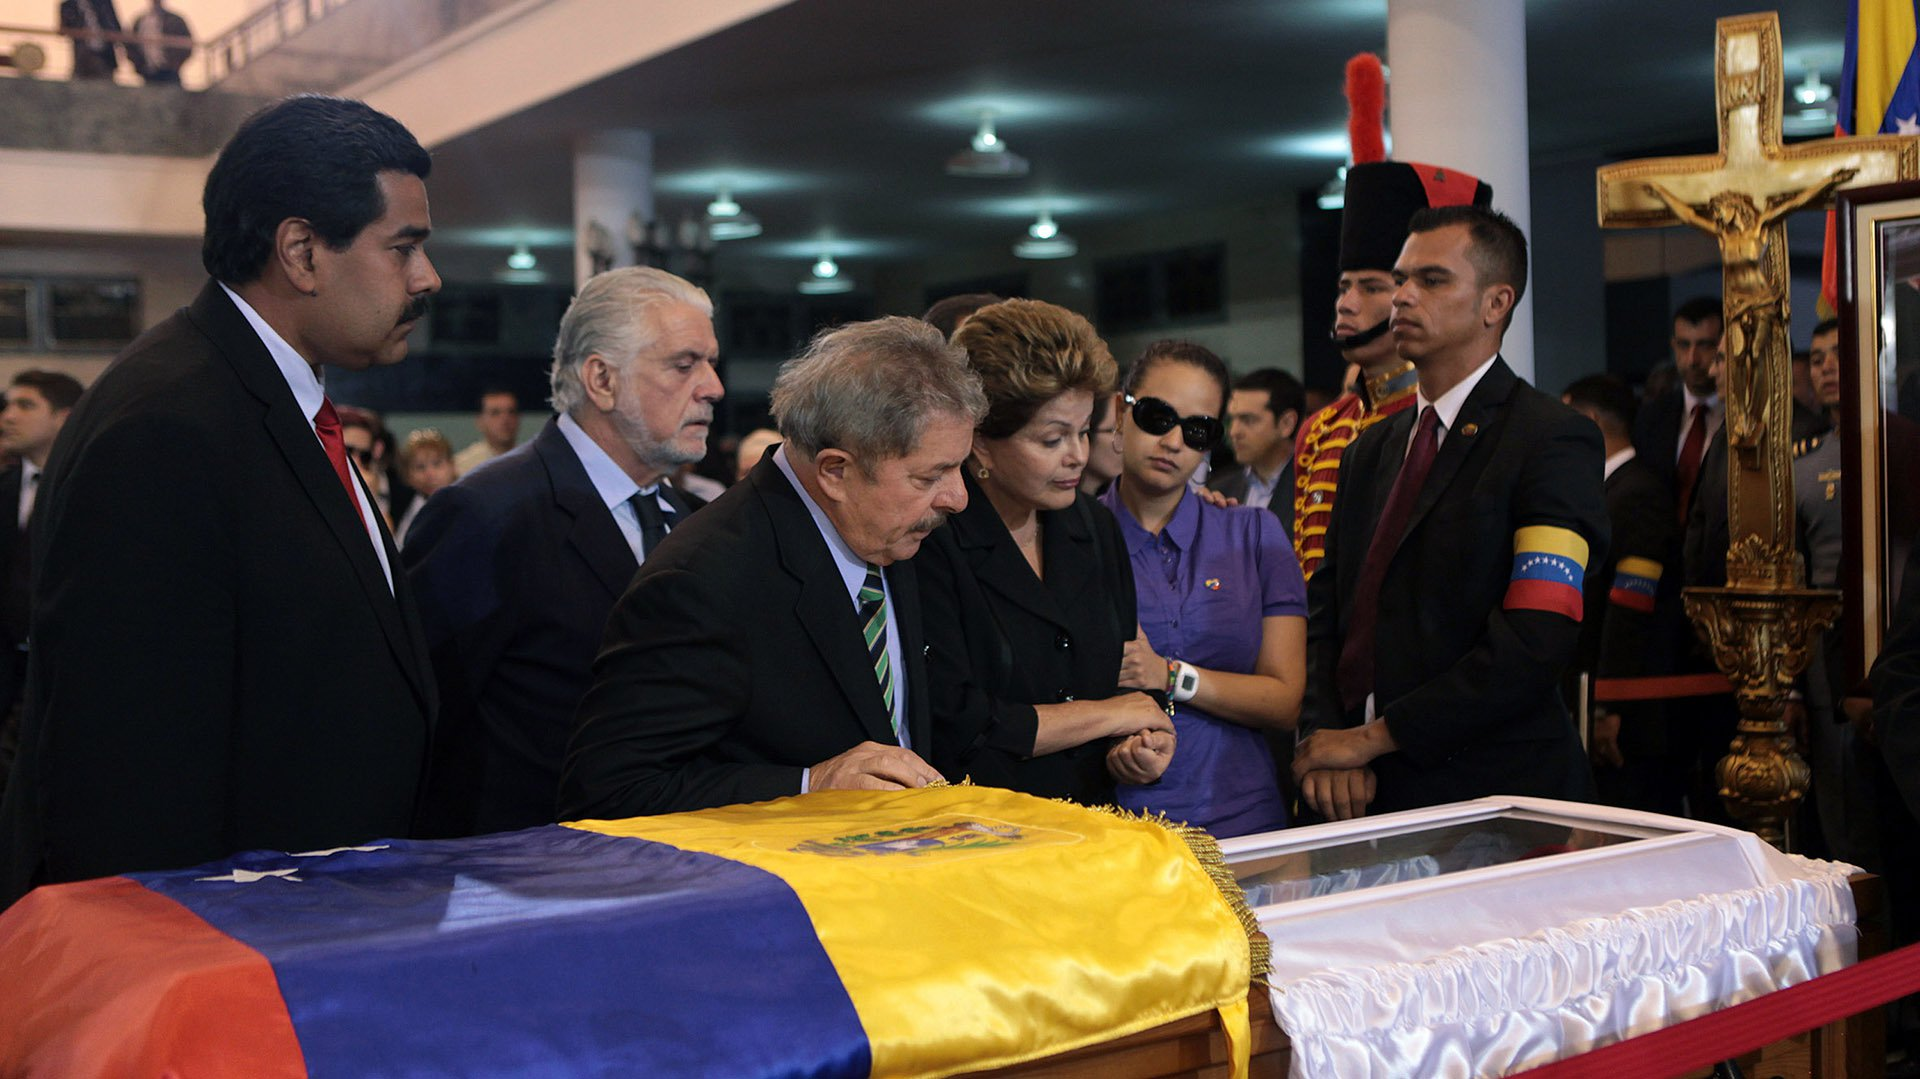 "Handout picture released by the Venezuelan presidency showing Brazilian former President Lula Da Silva (C) and present Brazilian president Dilma Roussef (C-R) during the funeral of President Hugo Chavez, in Caracas, on March 7, 2013. Late Venezuelan president Hugo Chavez will be moved to a barracks where he will lie in state for longer than had been planned then be embalmed ""like Lenin,"" interim leader Nicolas Maduro (L) said Thursday. AFP PHOTO/PRESIDENCIA/HO"